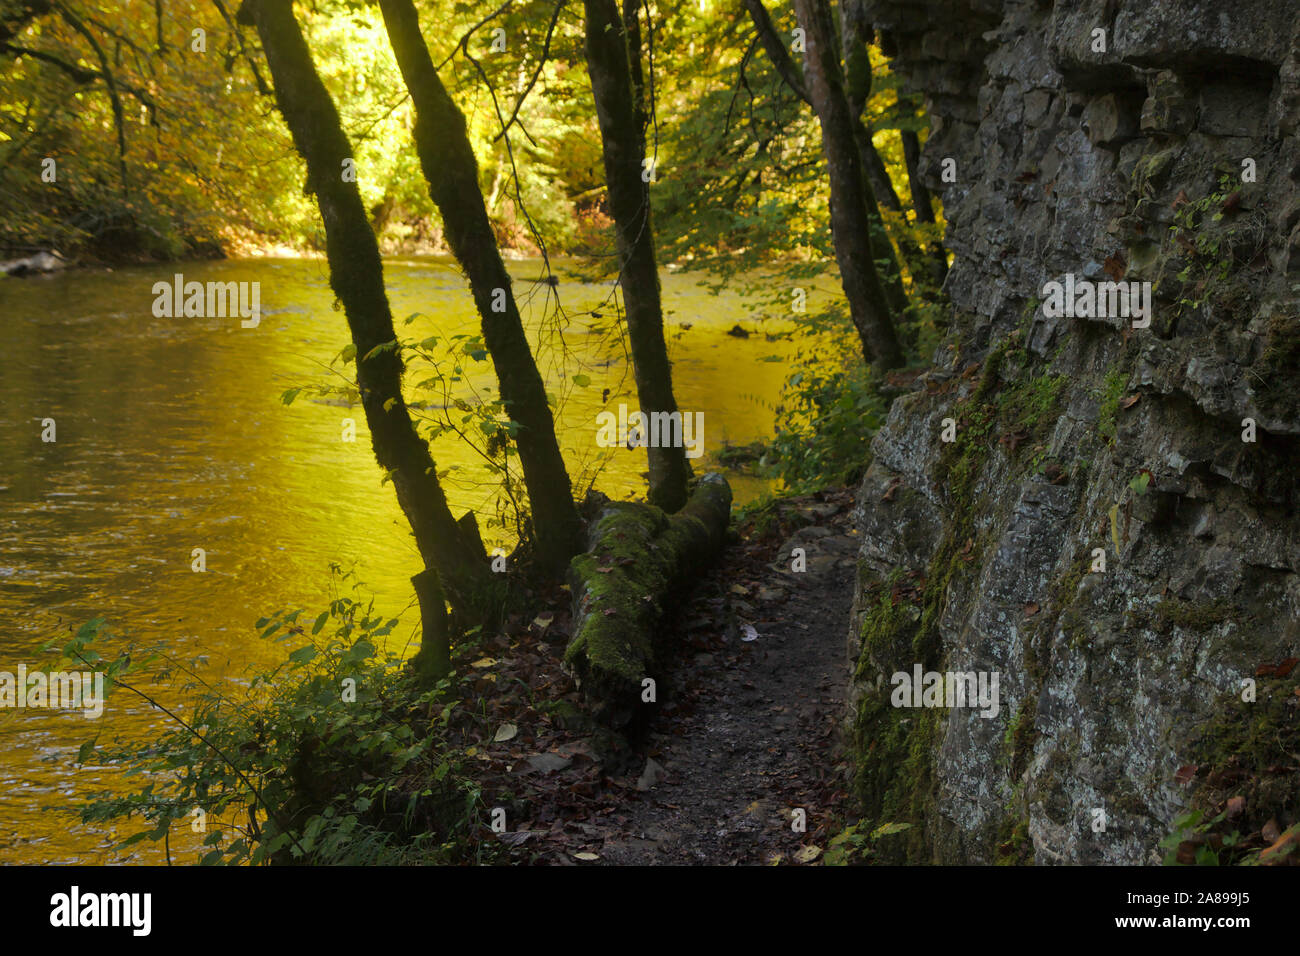 Magic light in Wutachschlucht (Wutach canyon),  autumn, Black Forest, Germany Stock Photo